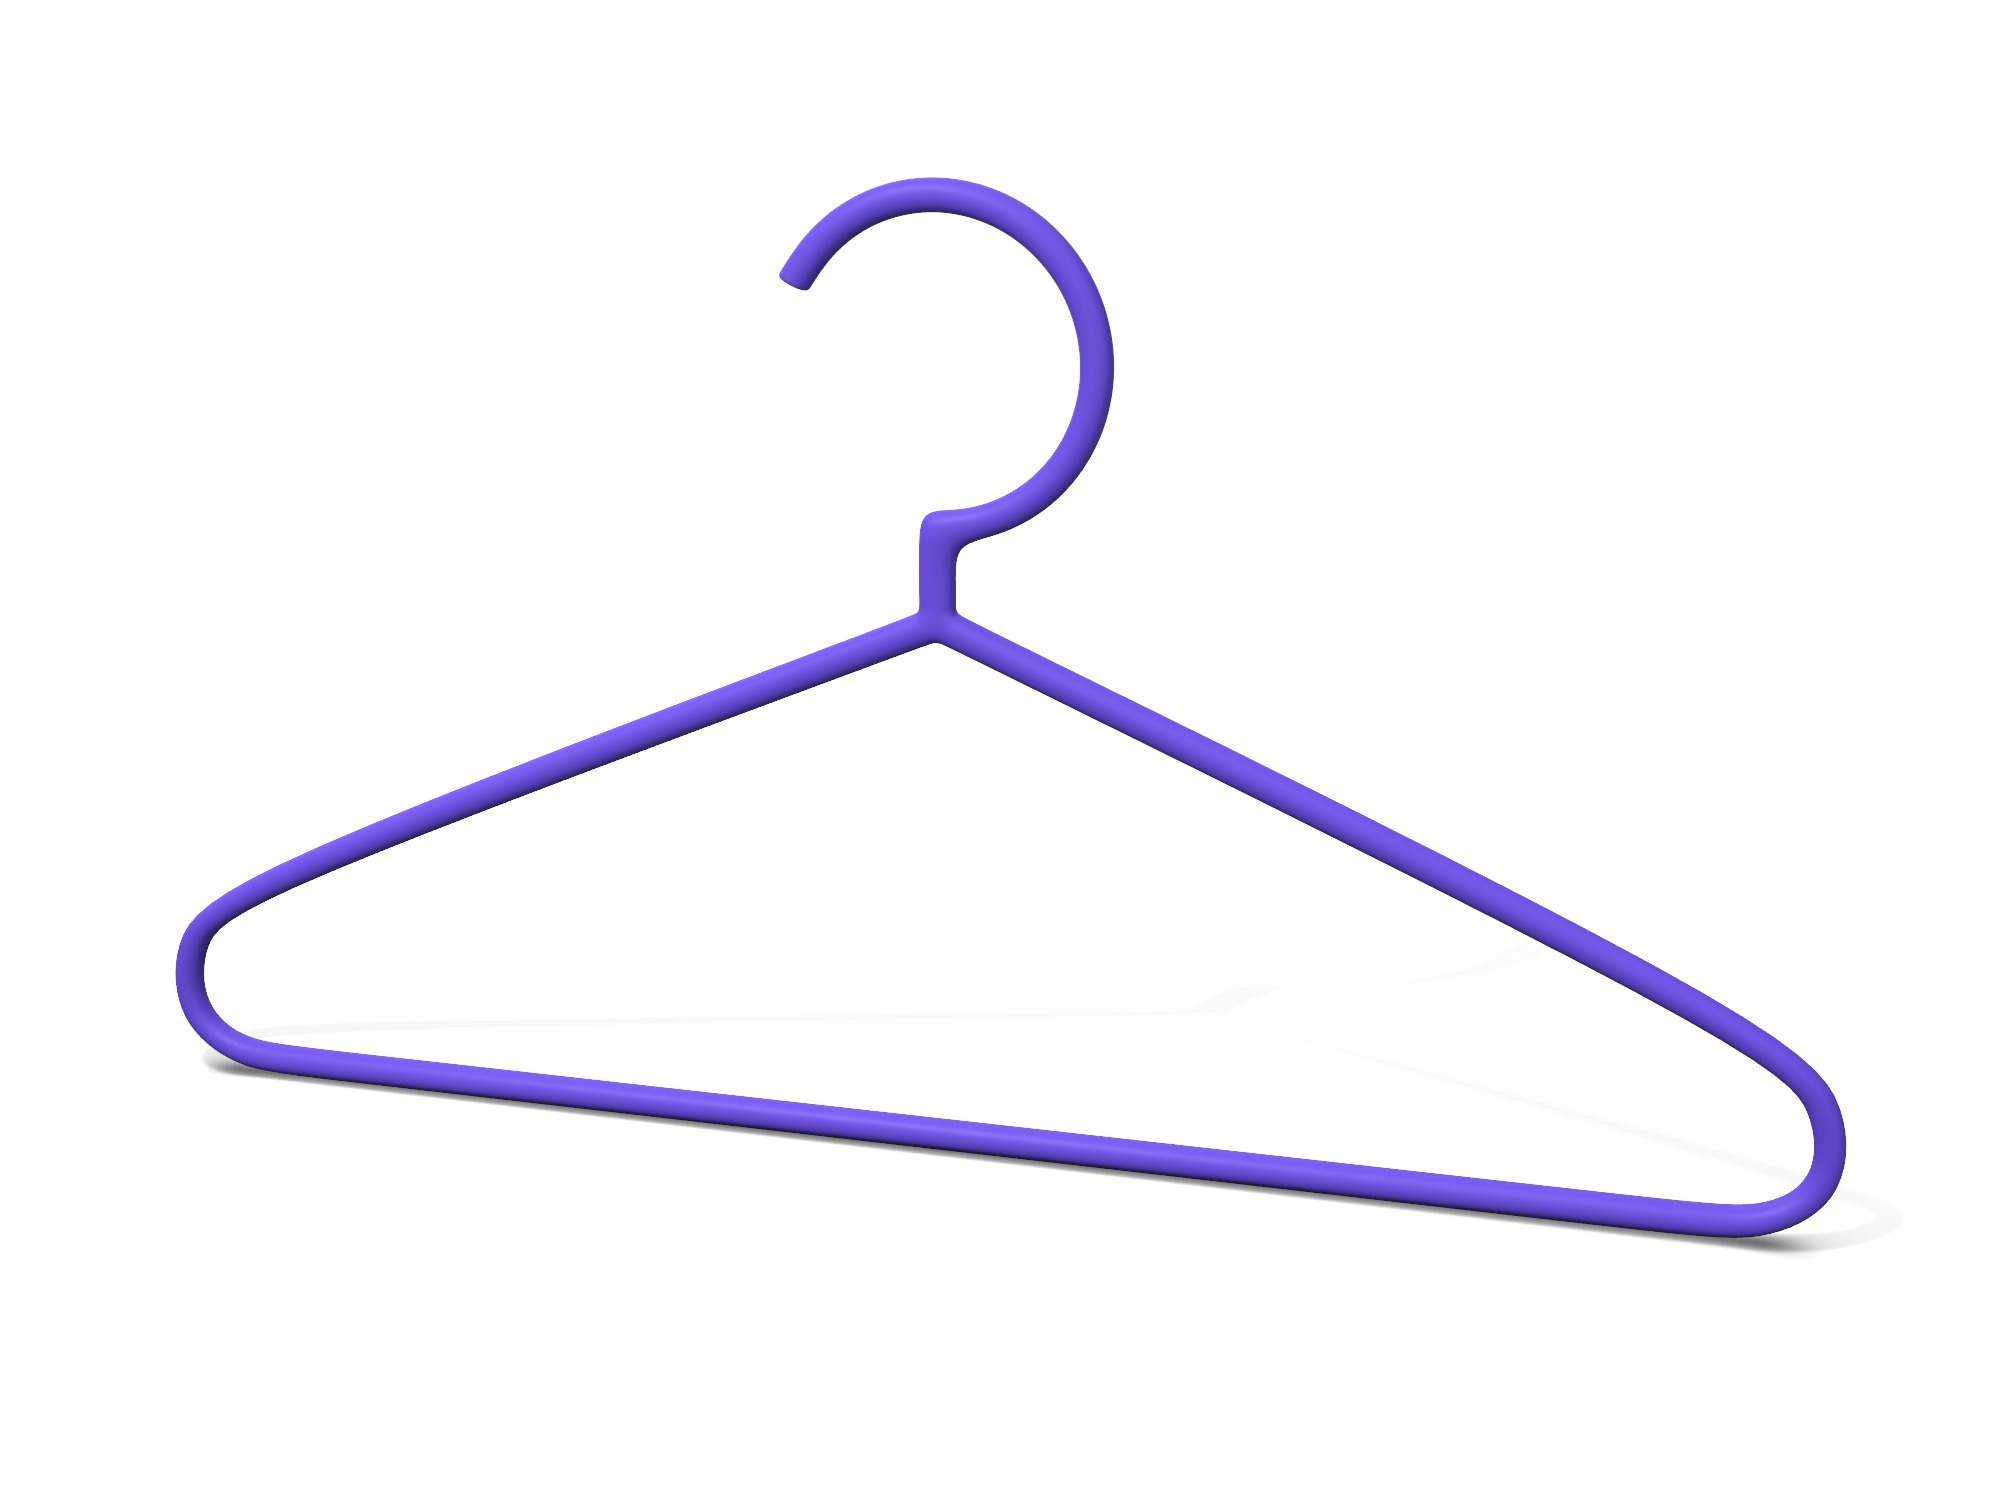 Thin hanger - 3D design by Vectary assets Oct 10, 2018